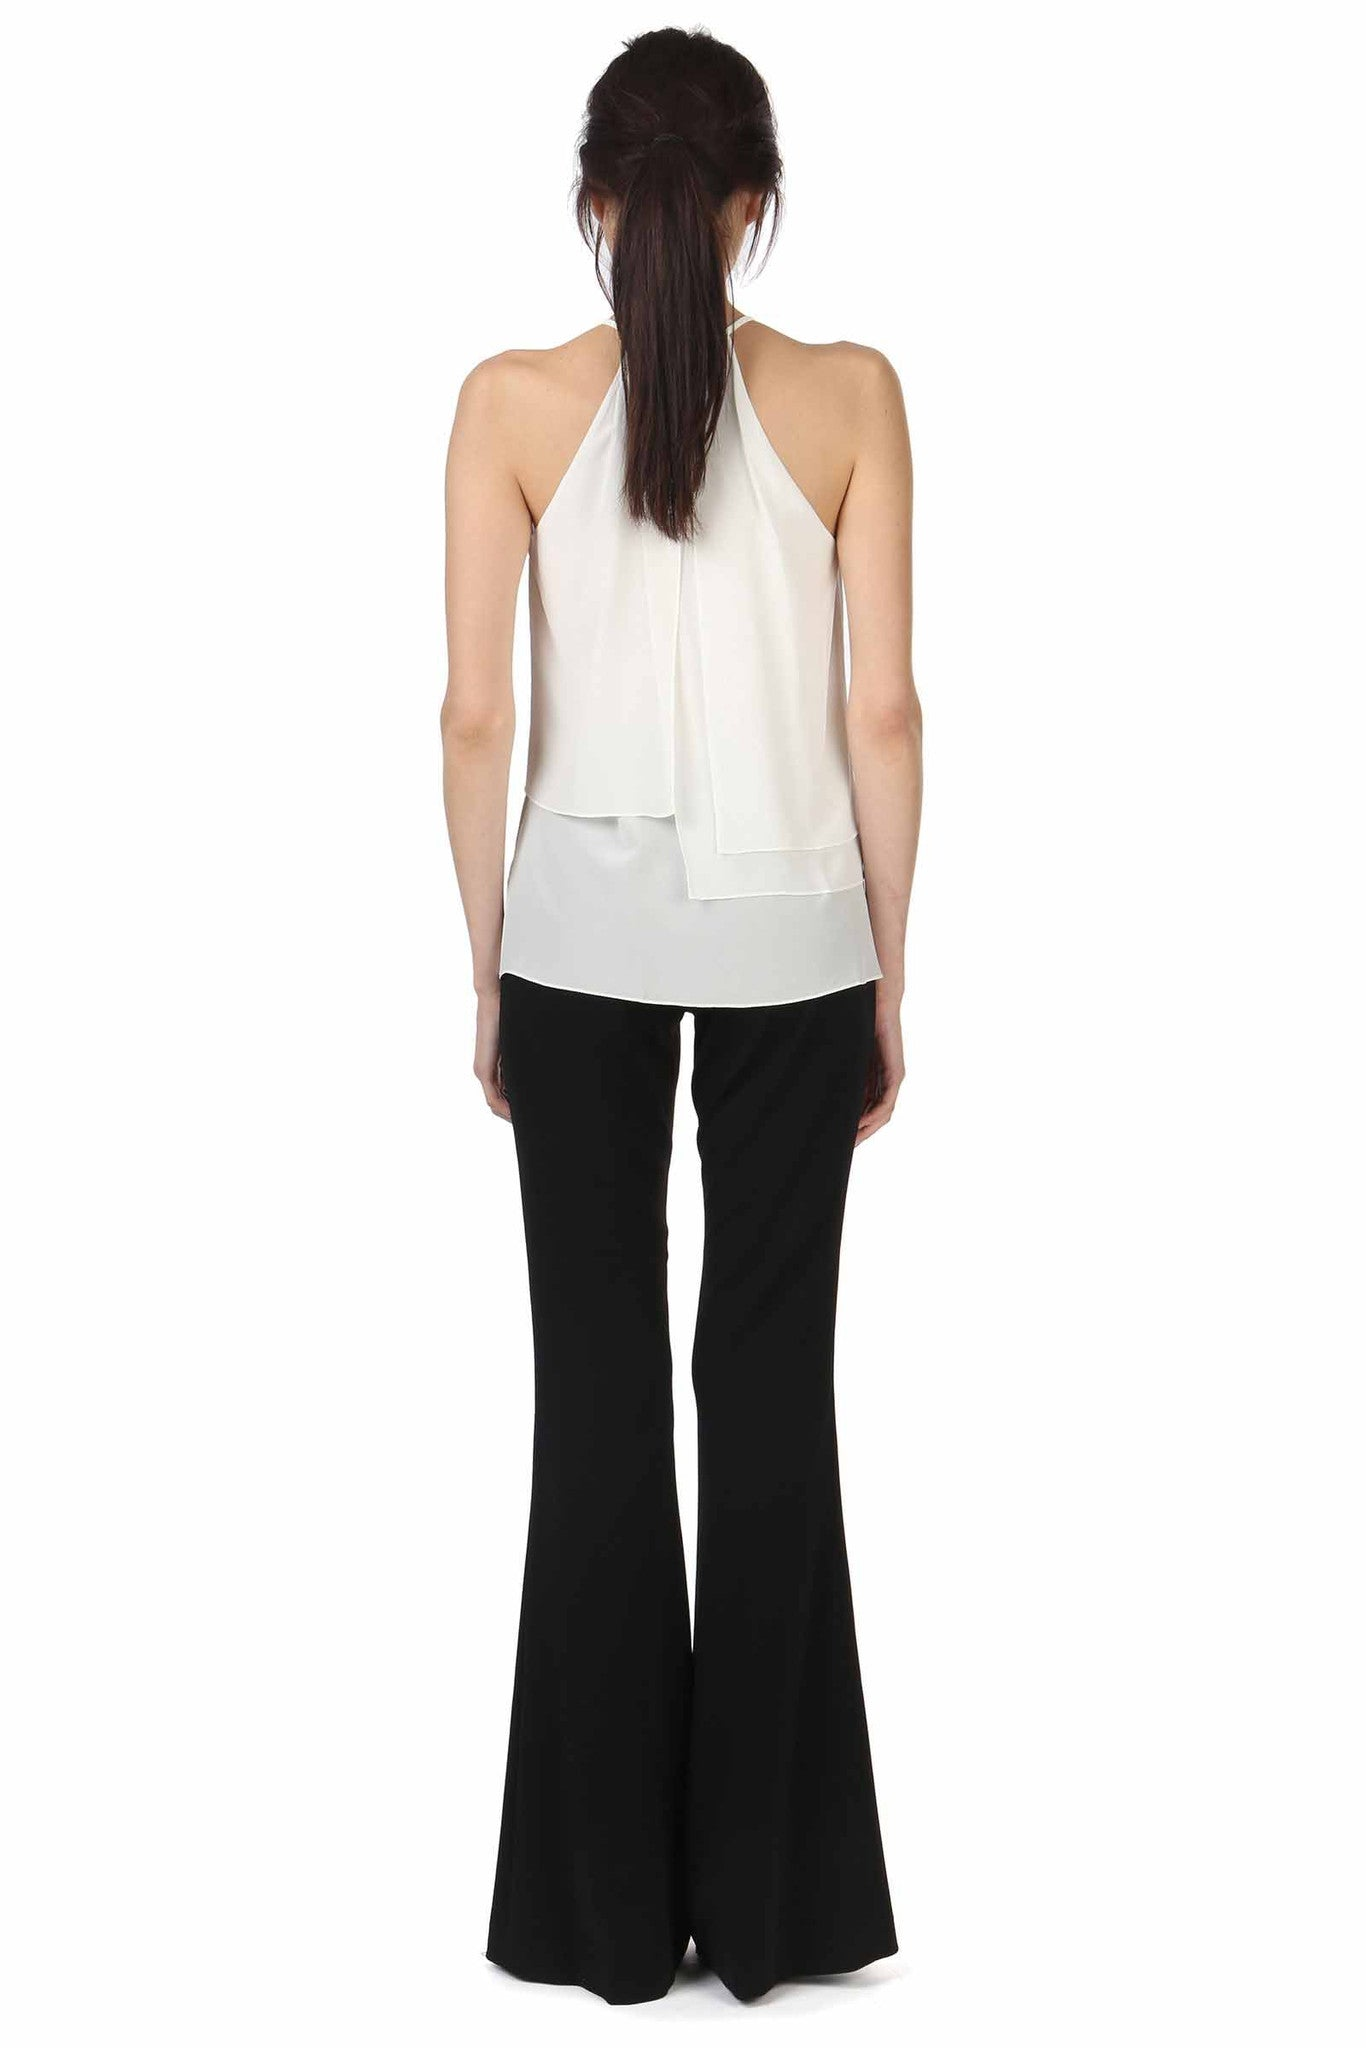 Jay Godfrey Ivory High-Neck Panel Top - Black View